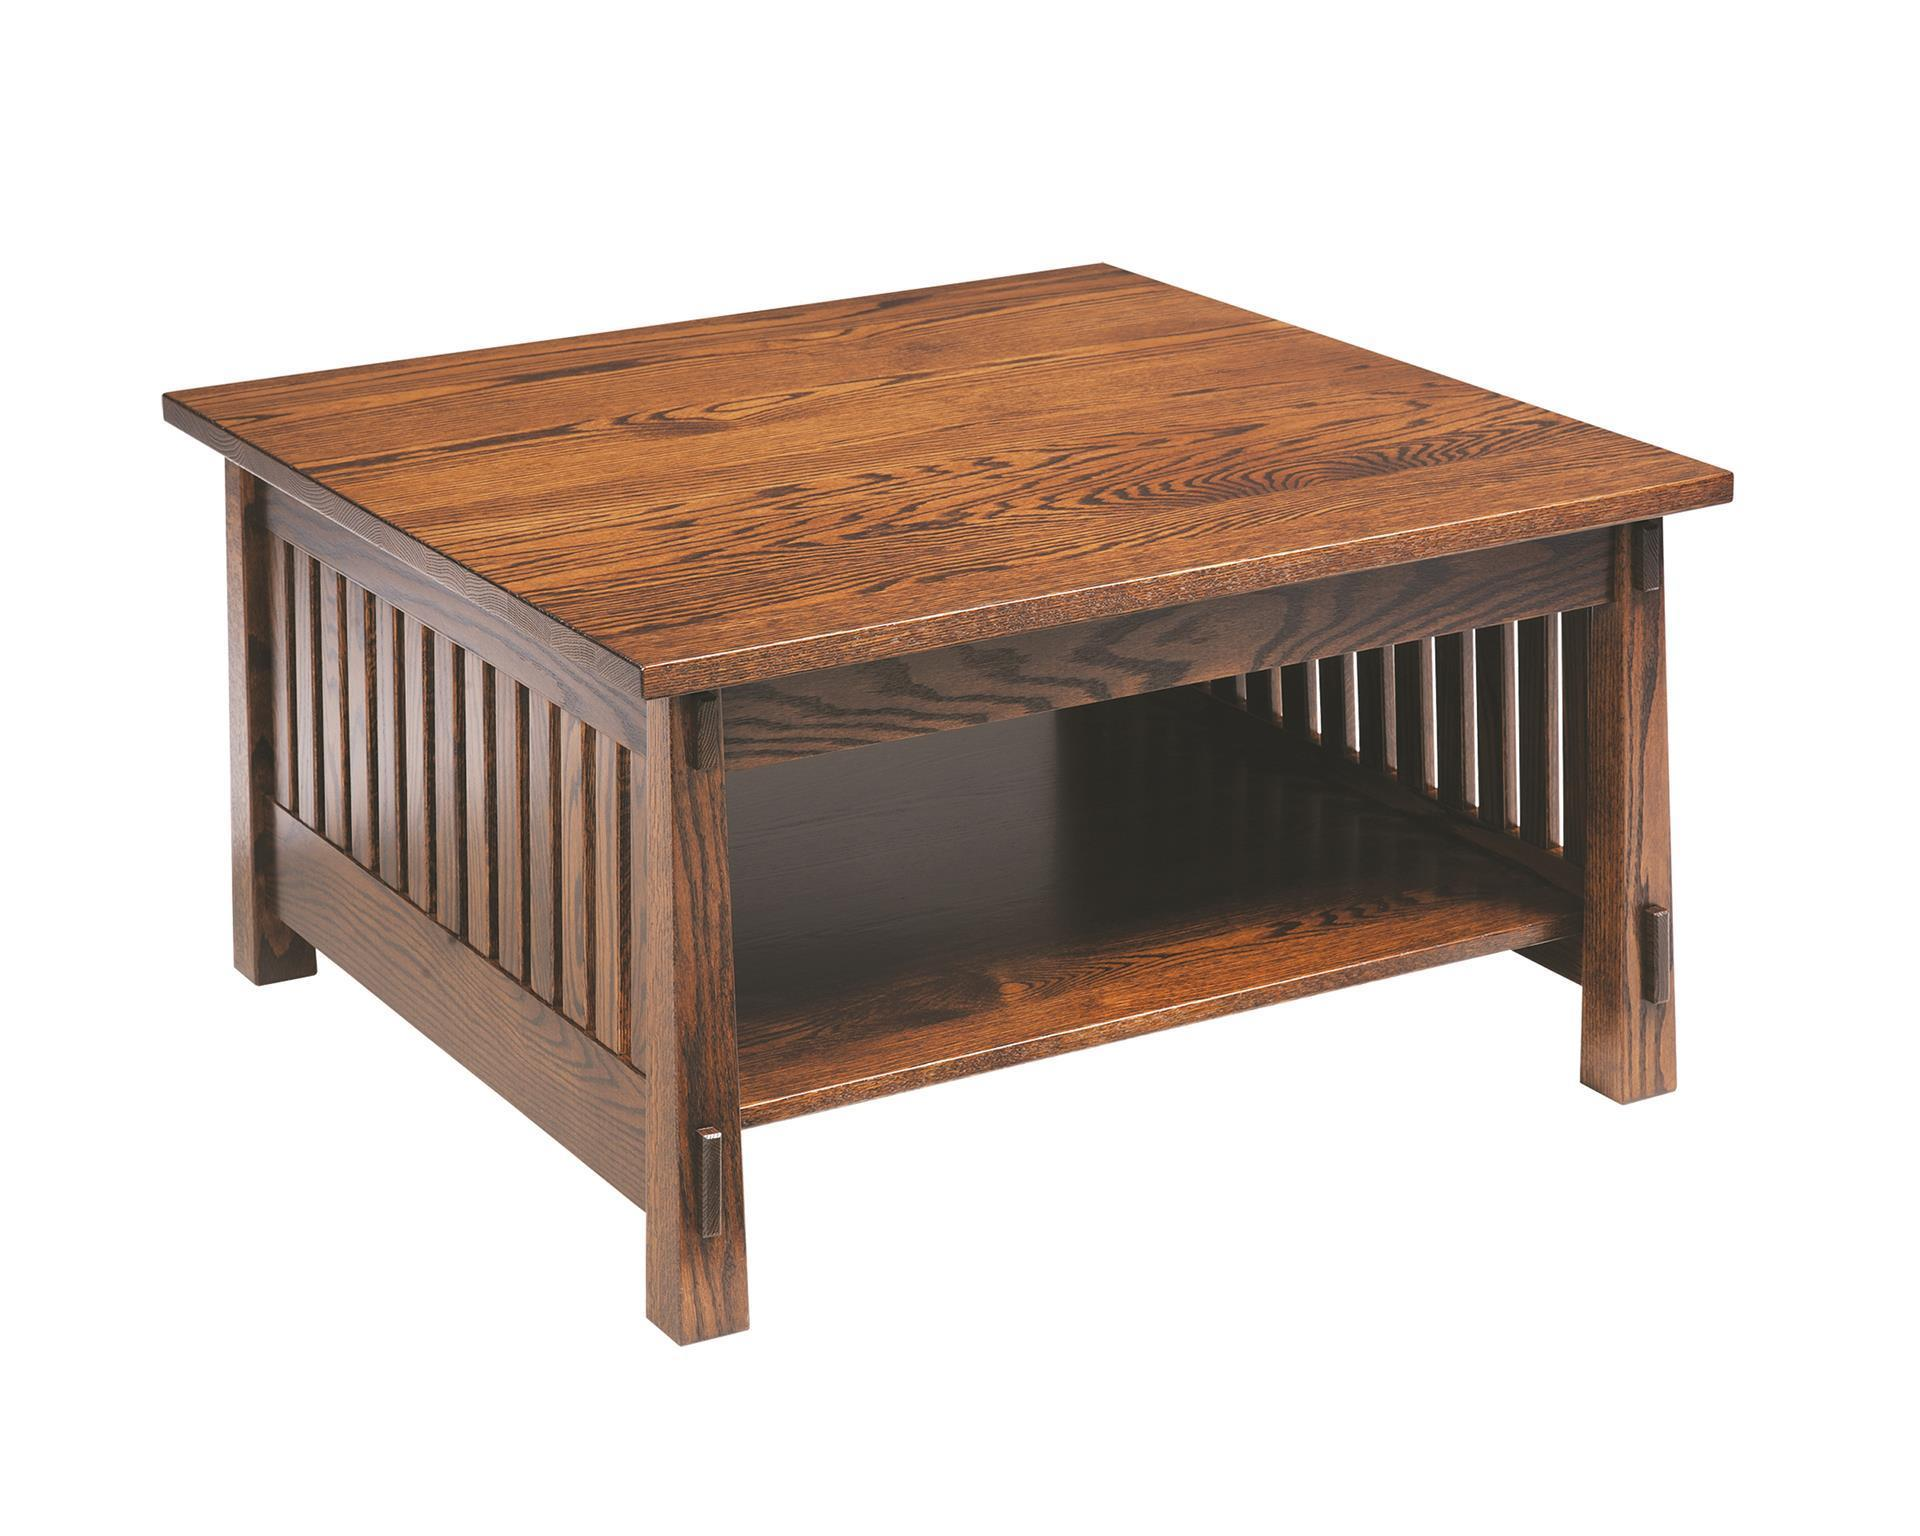 amish countryside mission square coffee table pid tables and end black glass cocktail equipment rental outdoor patio tops brown side with storage vinyl wedge placemats for round